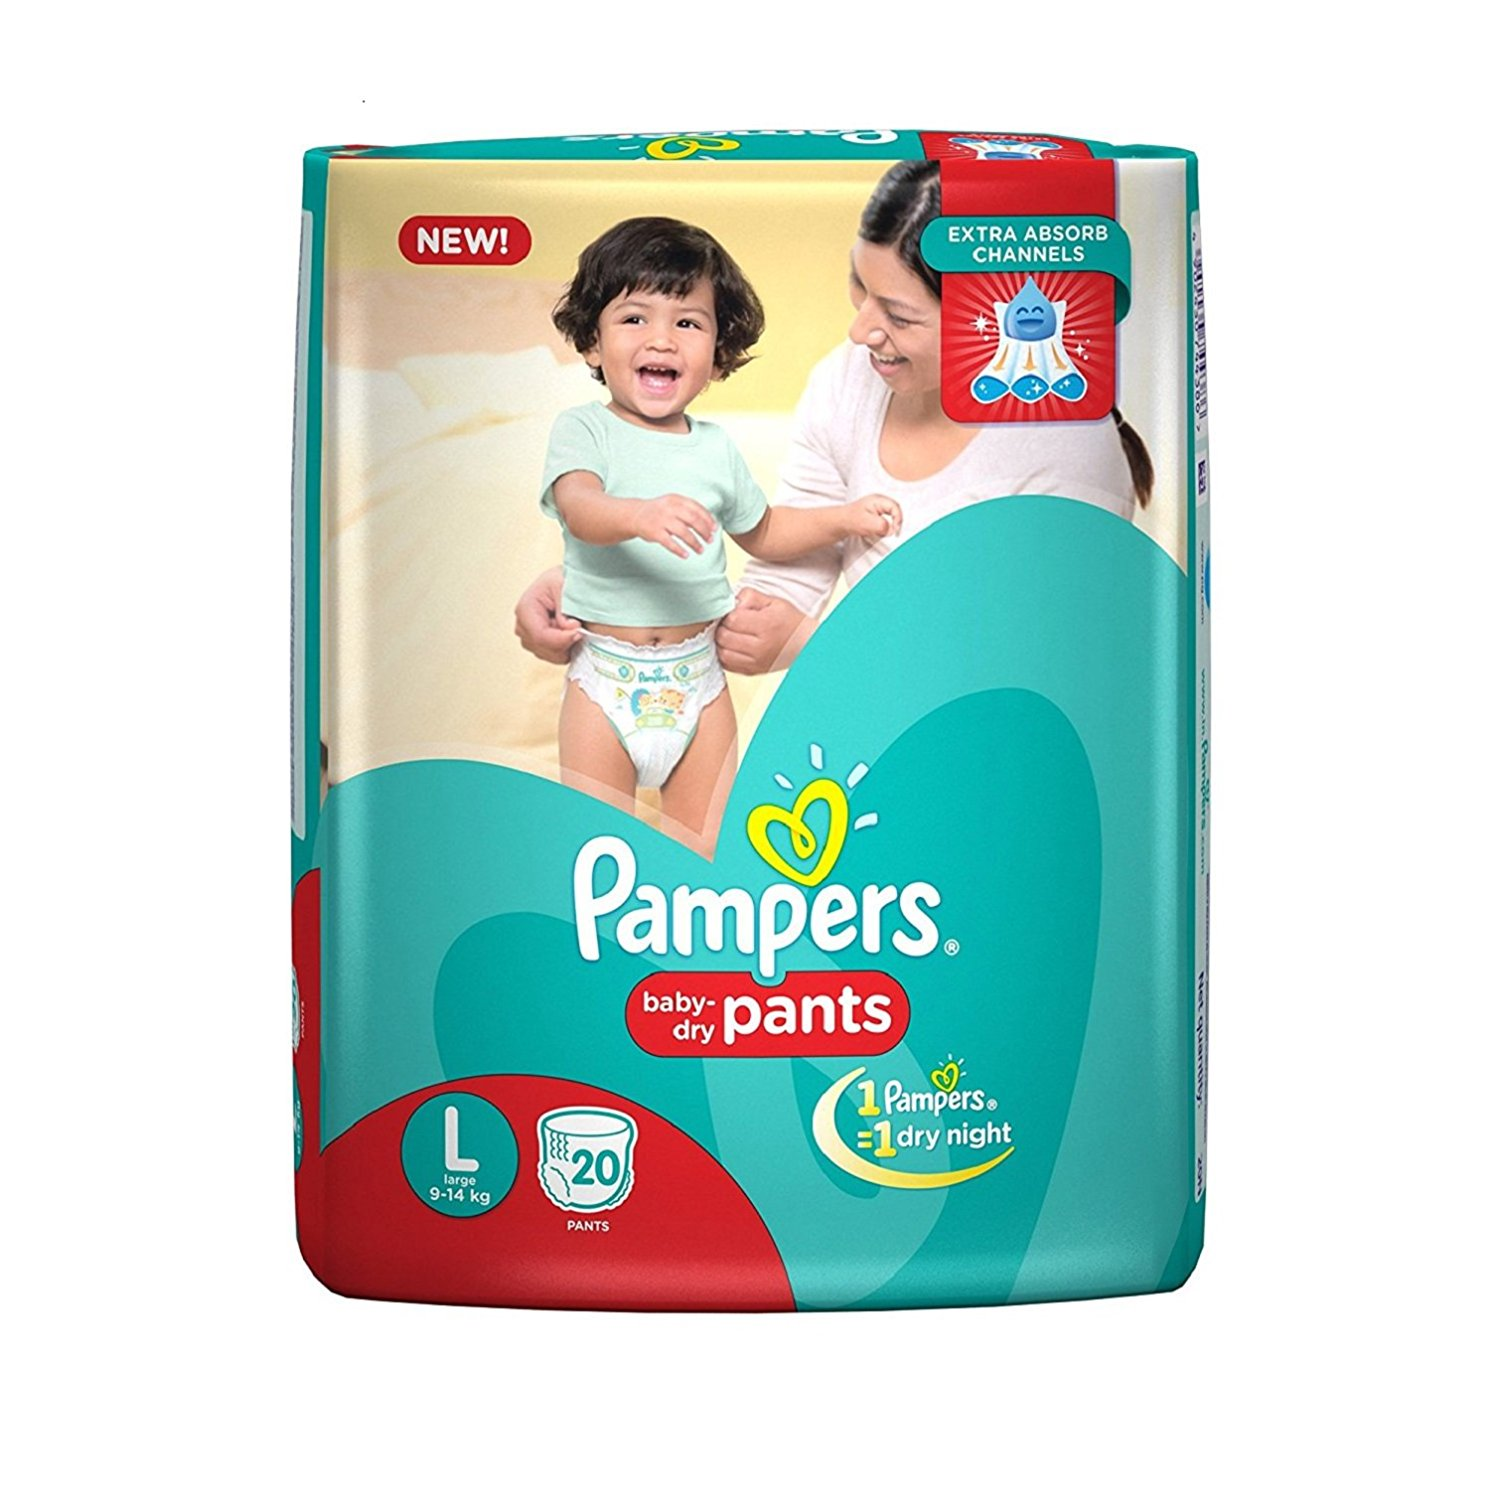 Pampers Large Size Diapers (8 Count)